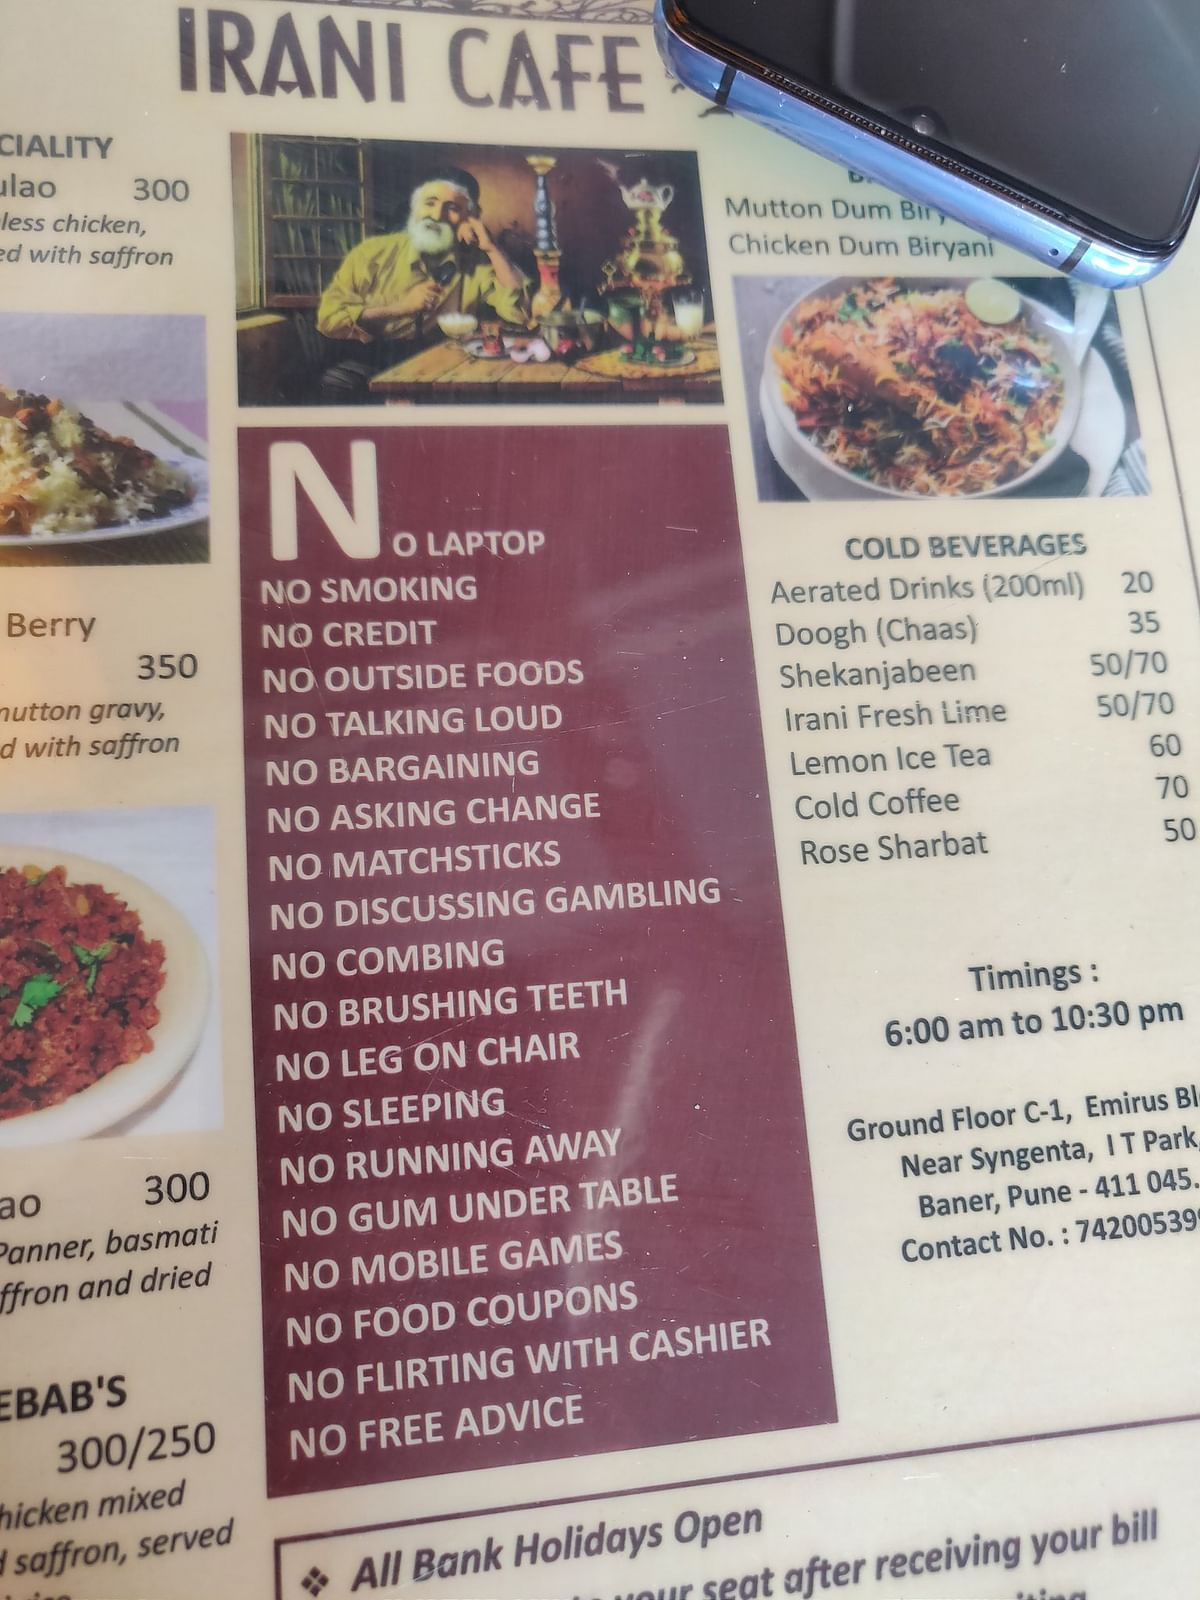 The menu at Irani Cafe in Pune